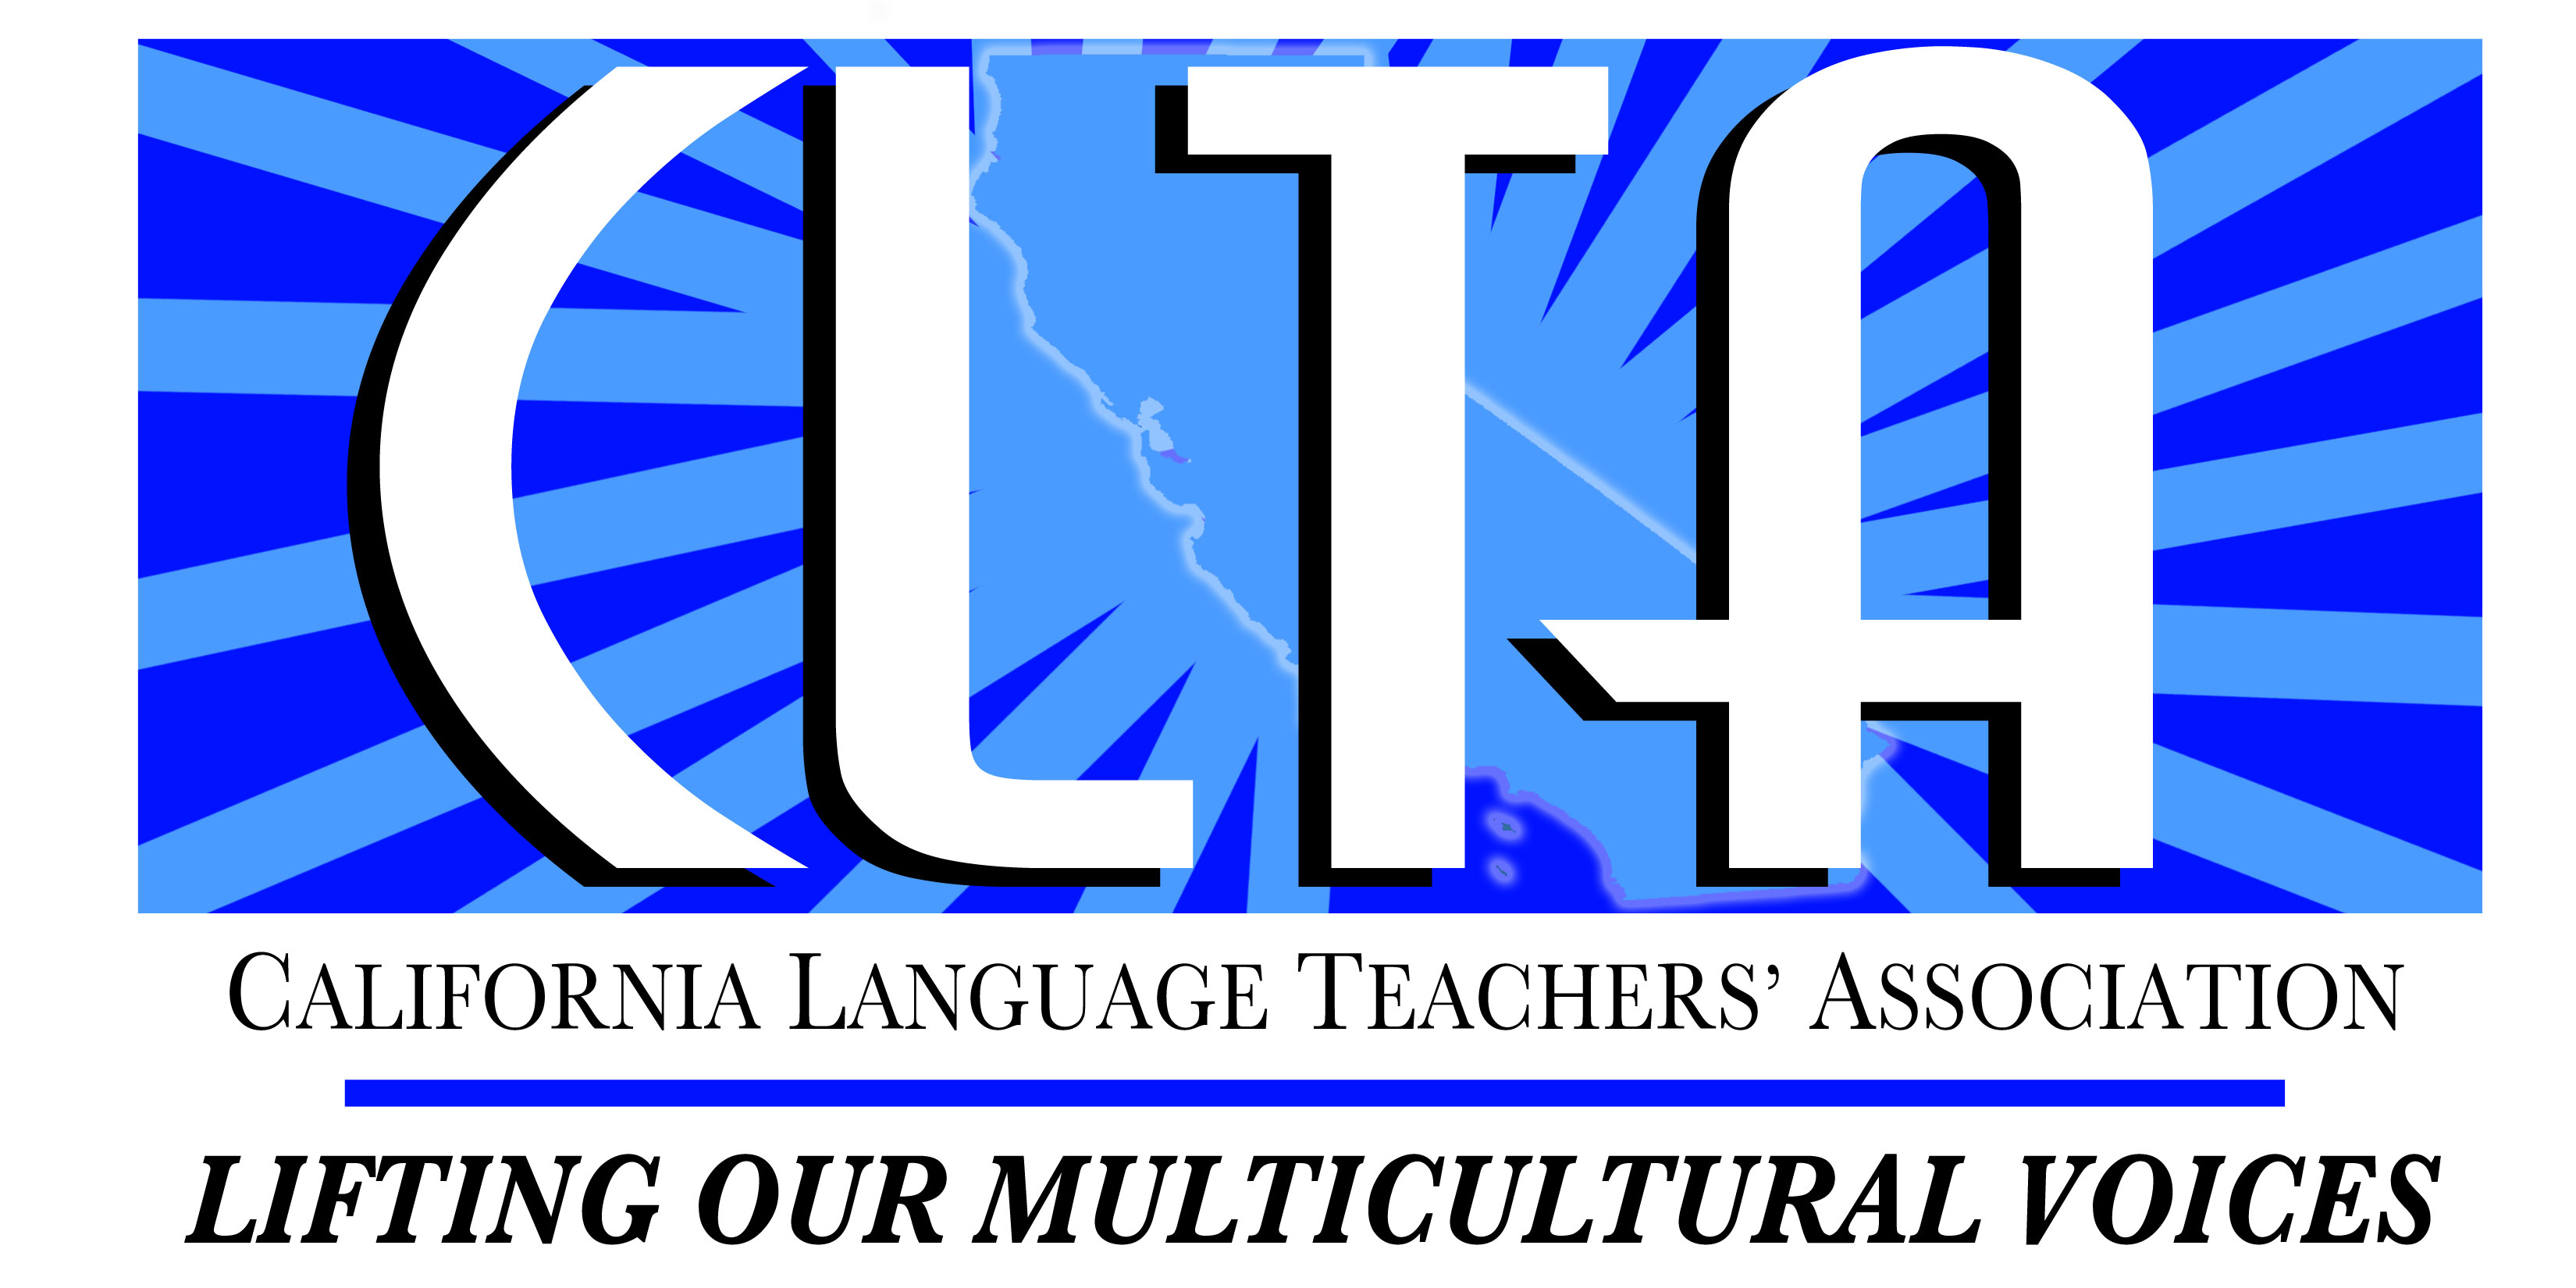 CLTA - Lifting Our Multicultural Voices